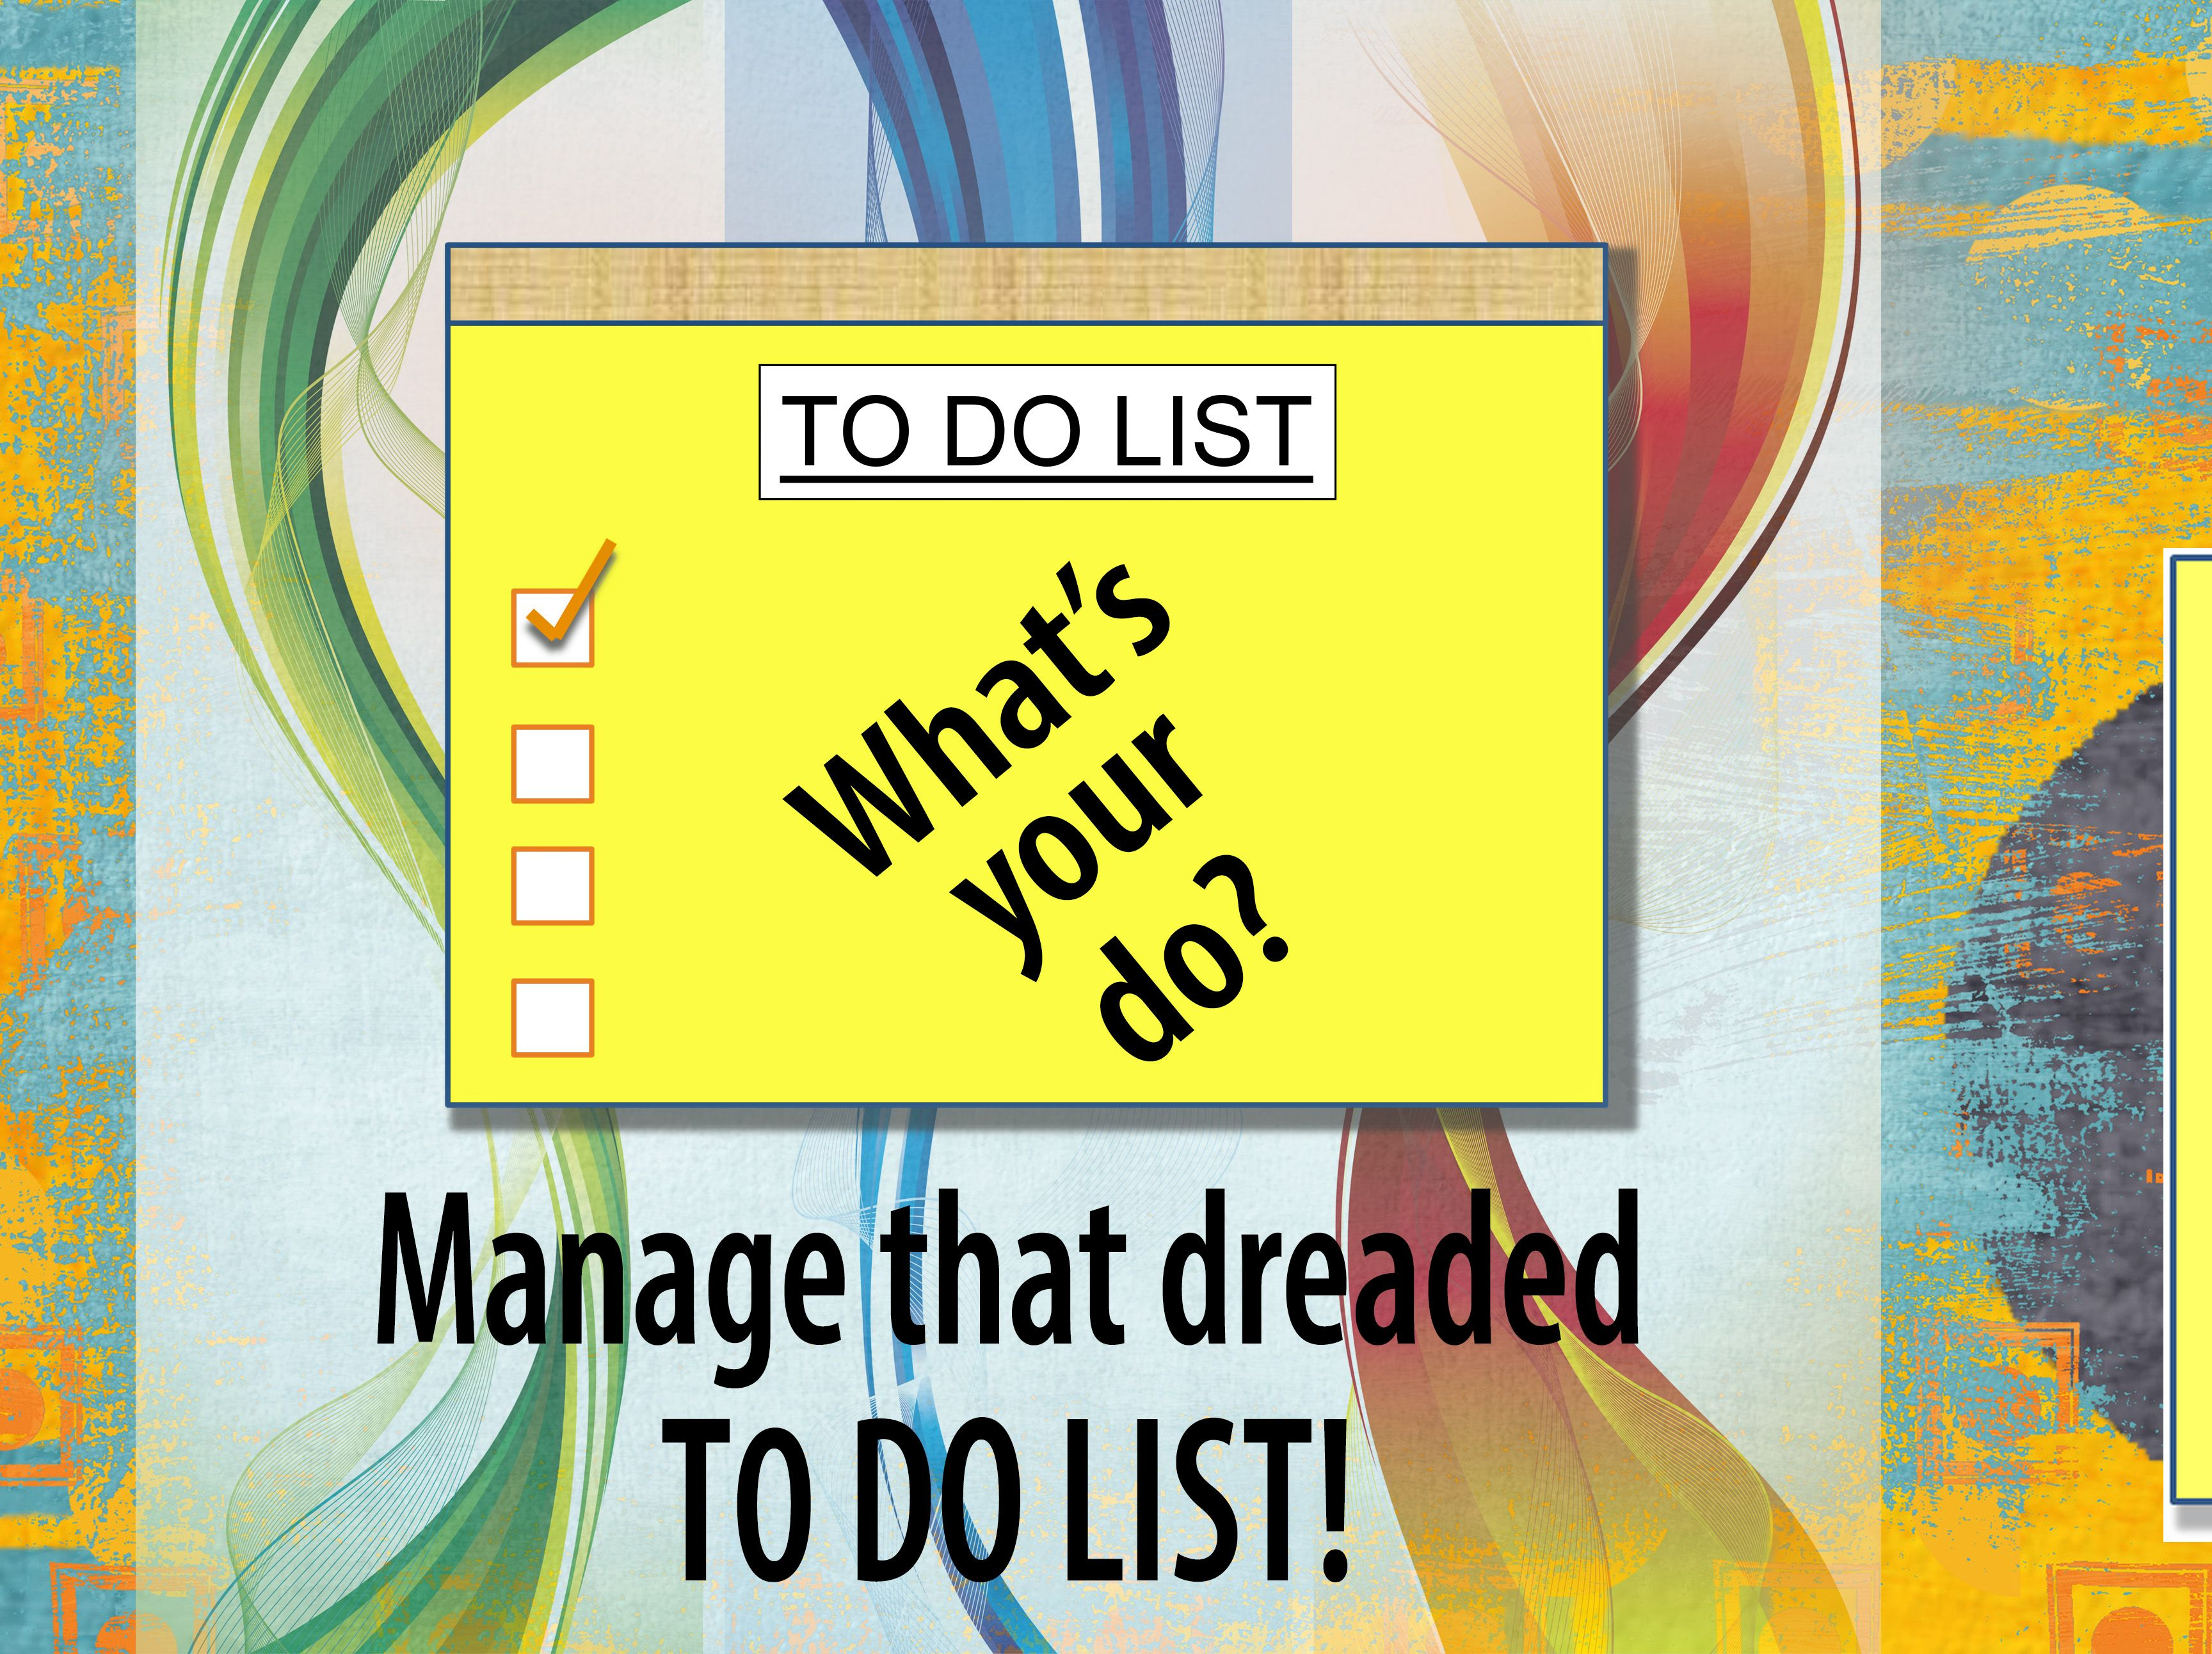 """What's your do? Let's manage that dreaded TO DO LIST!  In the hustle and bustle, most of us are buried in tasks and/or those wish projects. No matter your scenario, the burden of feeling overwhelmed can swallow us whole. And of course, stress and defeat is sure to follow. So let's unbind that nasty personal or work-related list.  It's ok…really. Using a """"To Do List"""" effectively can set your focus and whittle away the worries, not to mention…those wonderful tasks....."""